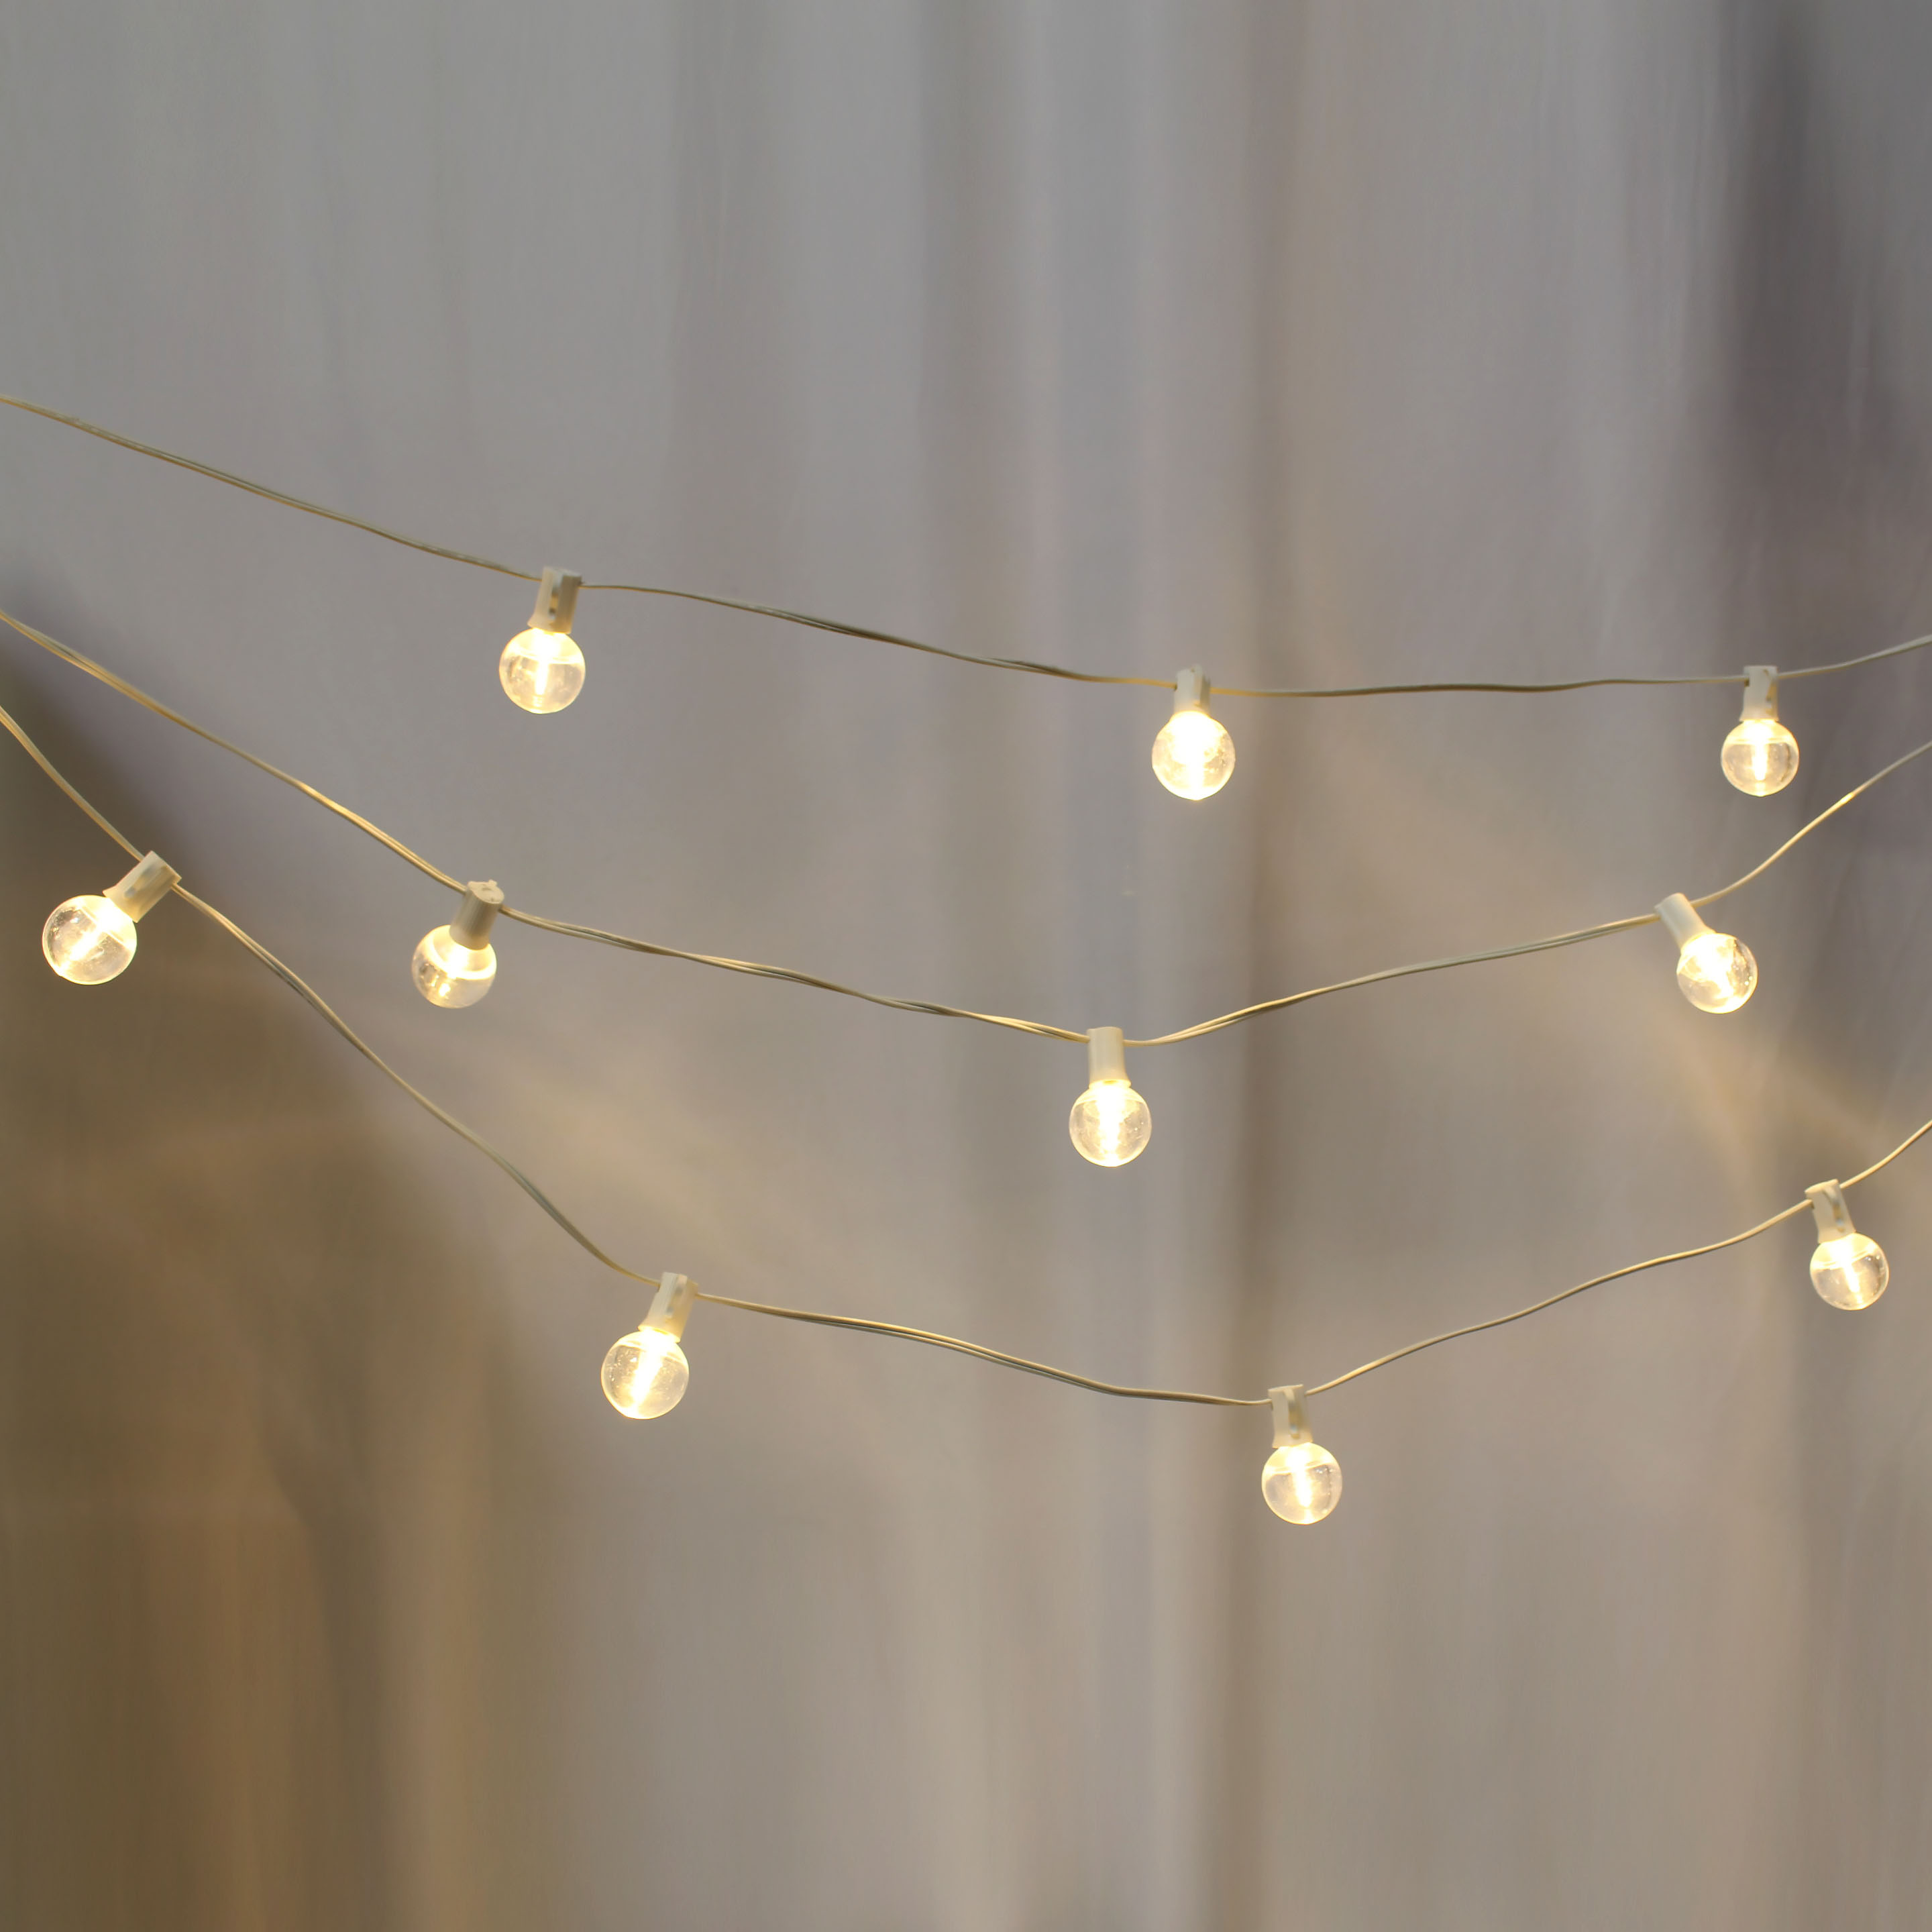 Cafe String Lights 50' White Female Strand